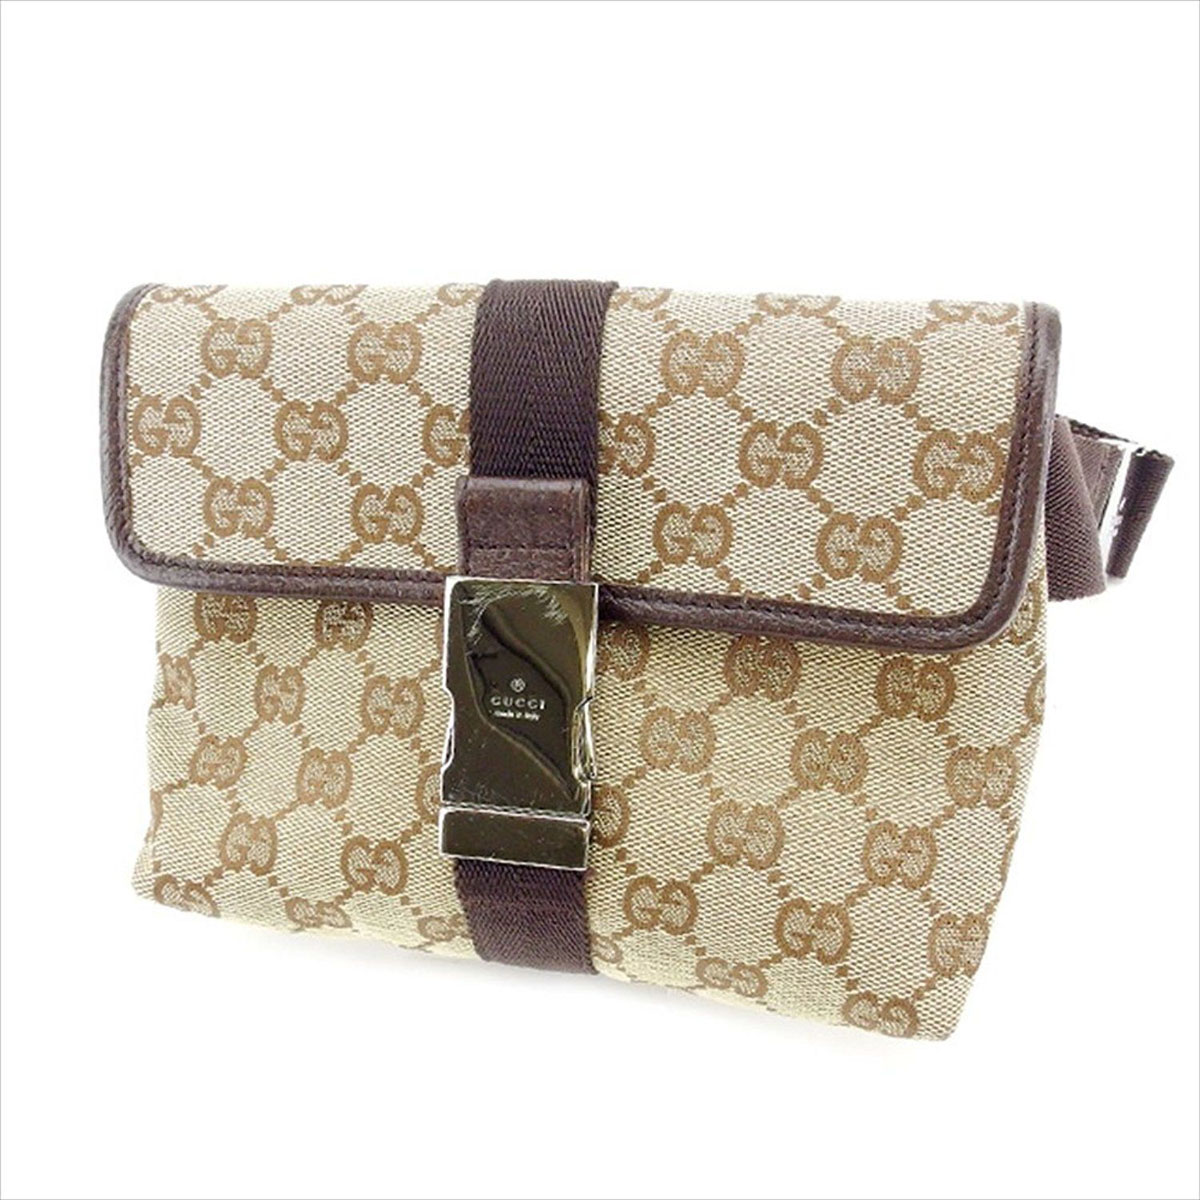 80986f56f907 Gucci GUCCI bum-bag waist porch men's possible GG canvas 131236 beige X  brown X silver canvas X leather (correspondence) beauty article sale Y3203